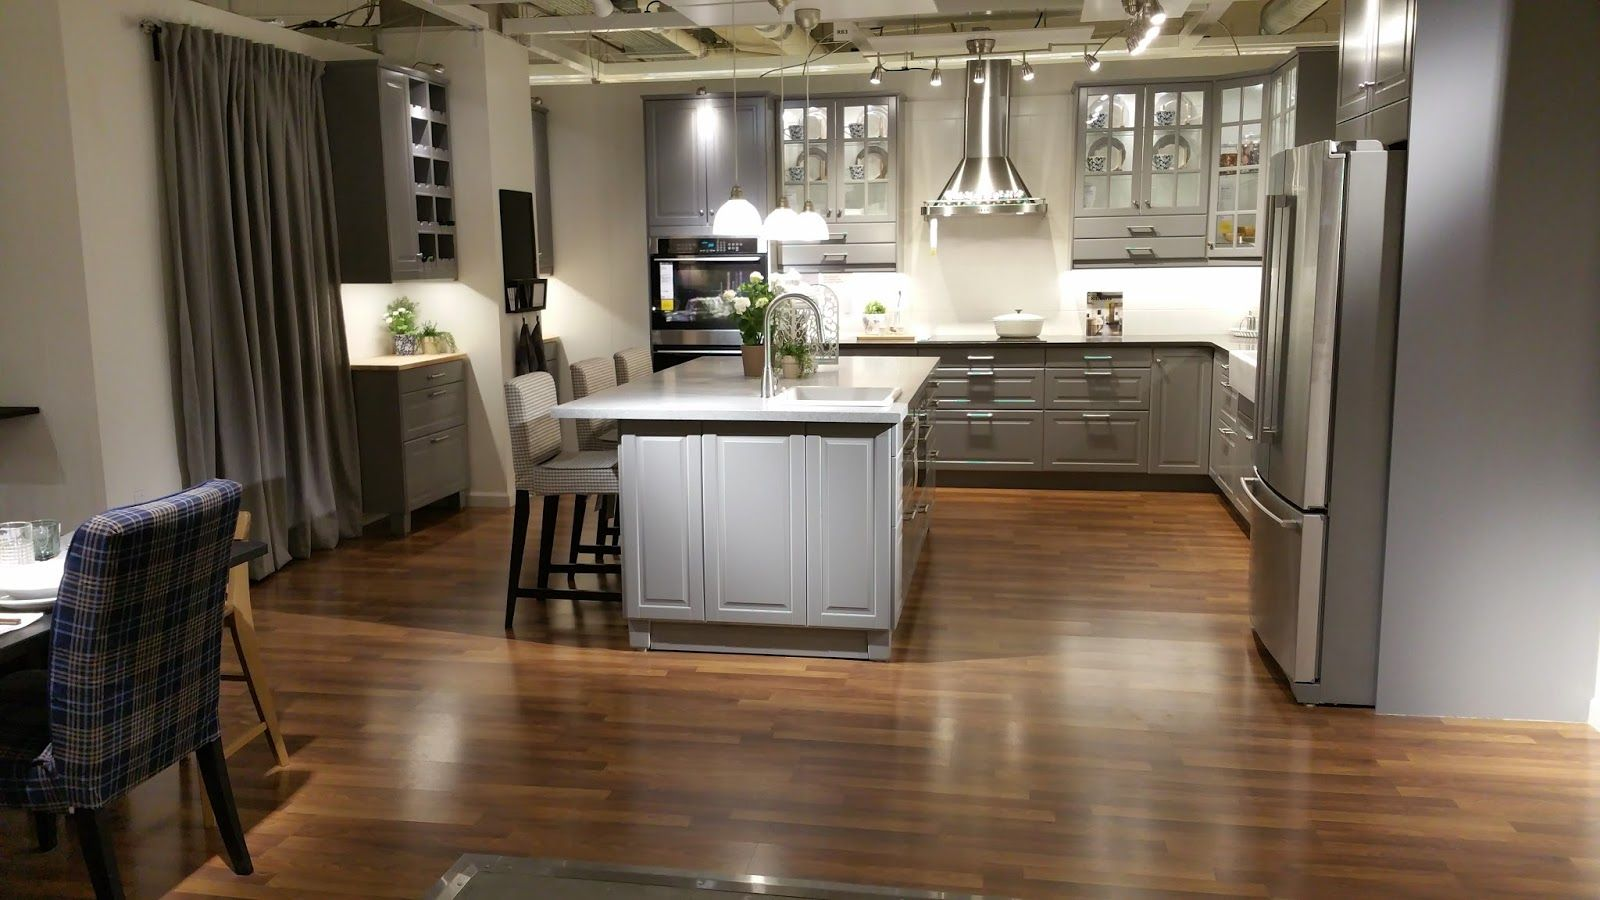 Bodbyn Kücheninsel Bodbyn Grey Kitchen Google Search Ikea Bodbyn Grey